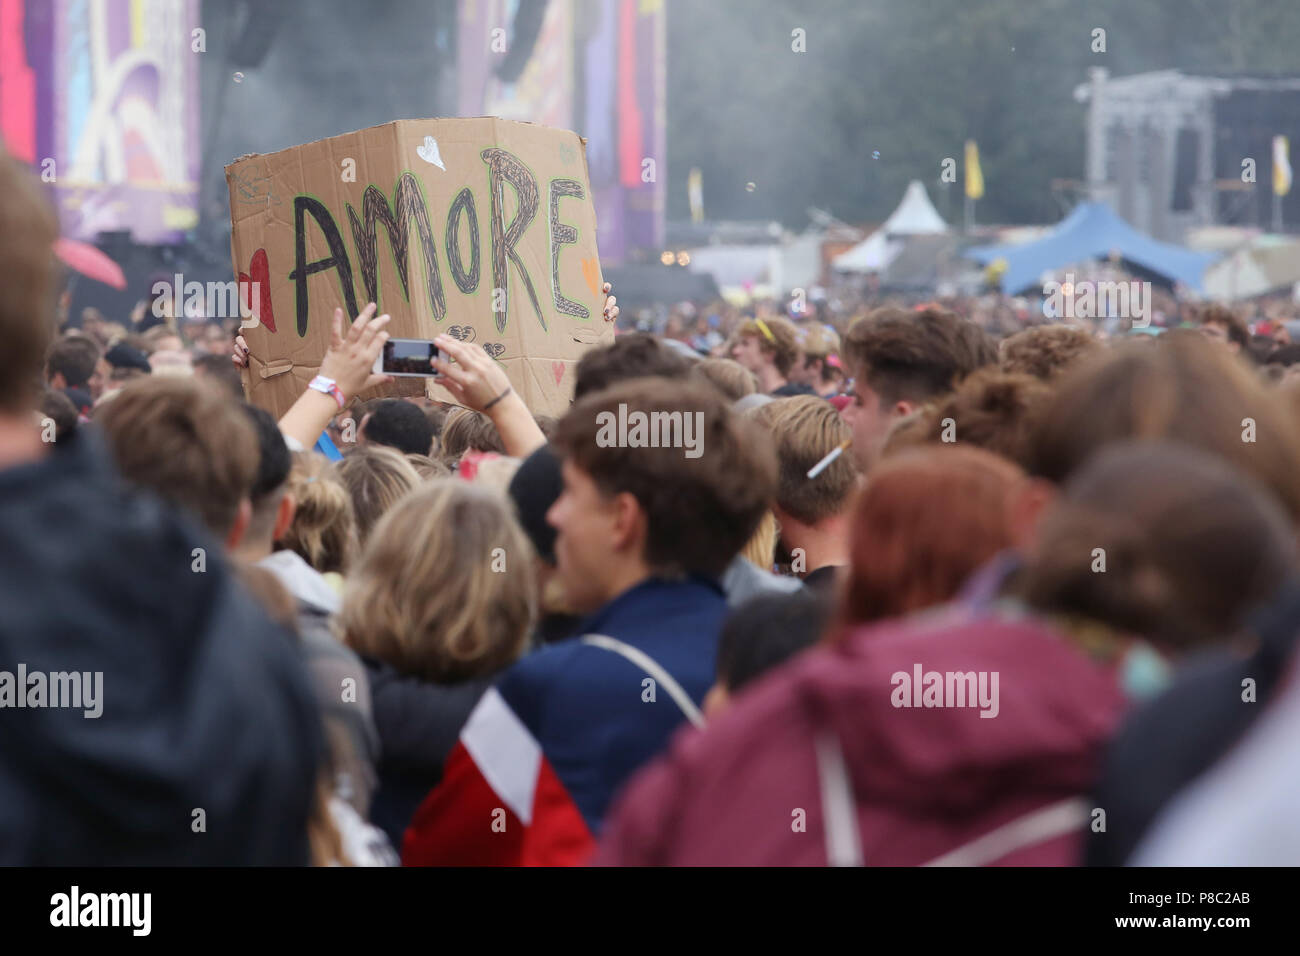 Hoppegarten, spectators at Lollapalooza Berlin 2017 at the racecourse Hoppegarten - Stock Image